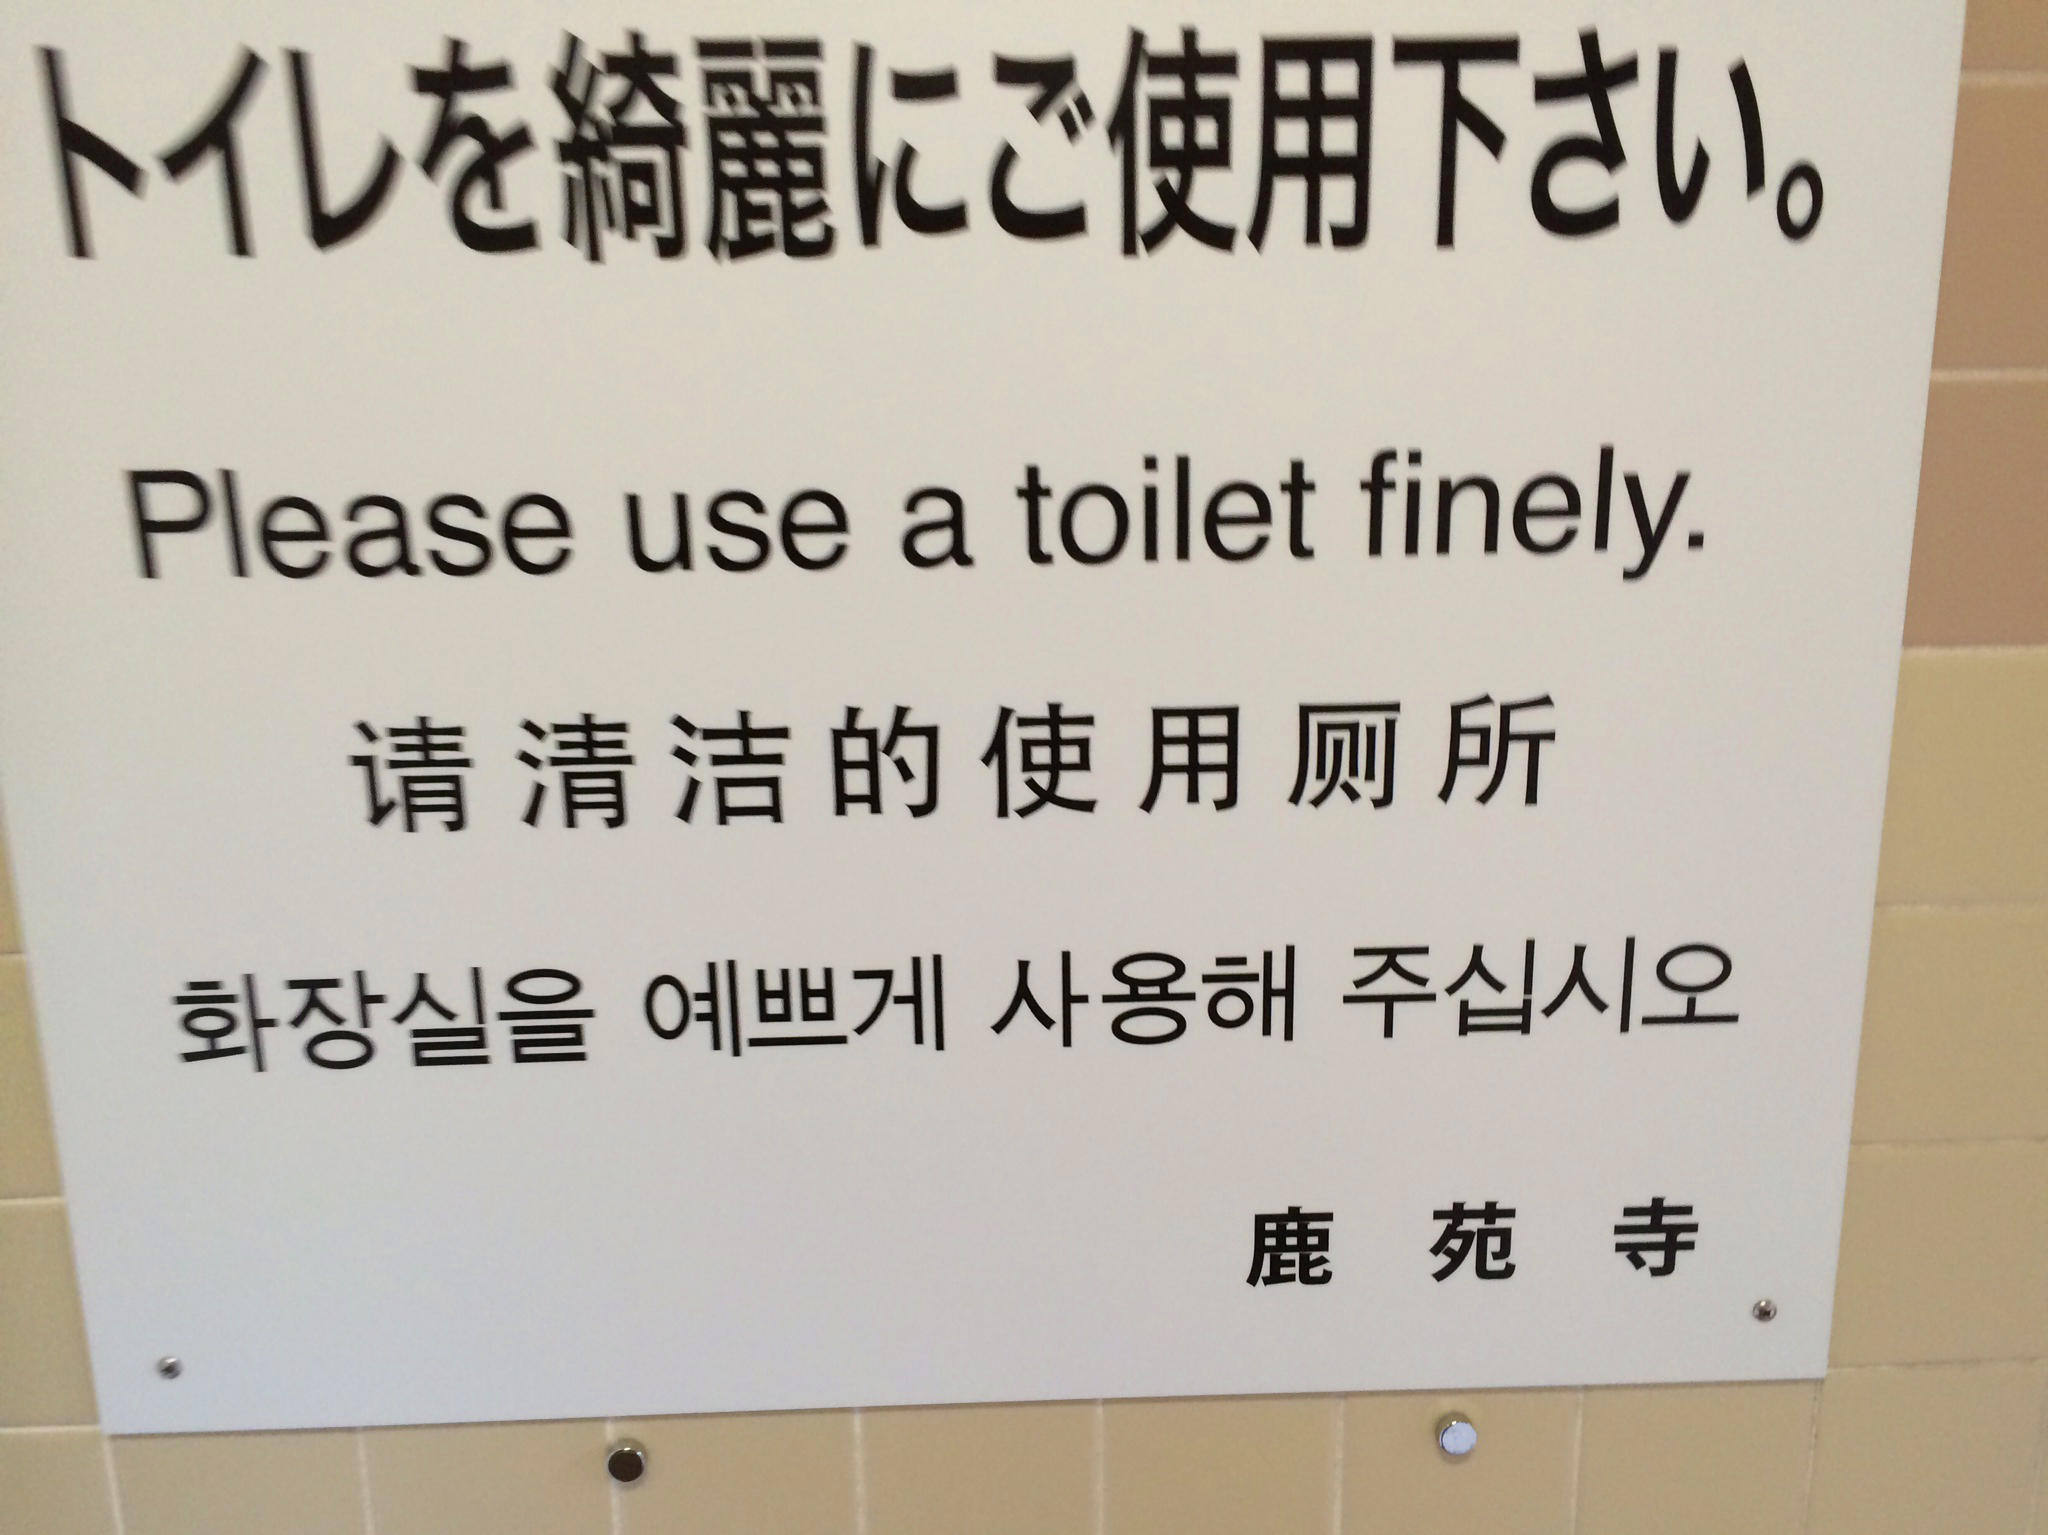 Toilet Signs Are Mysterious And Mirth-Inducing